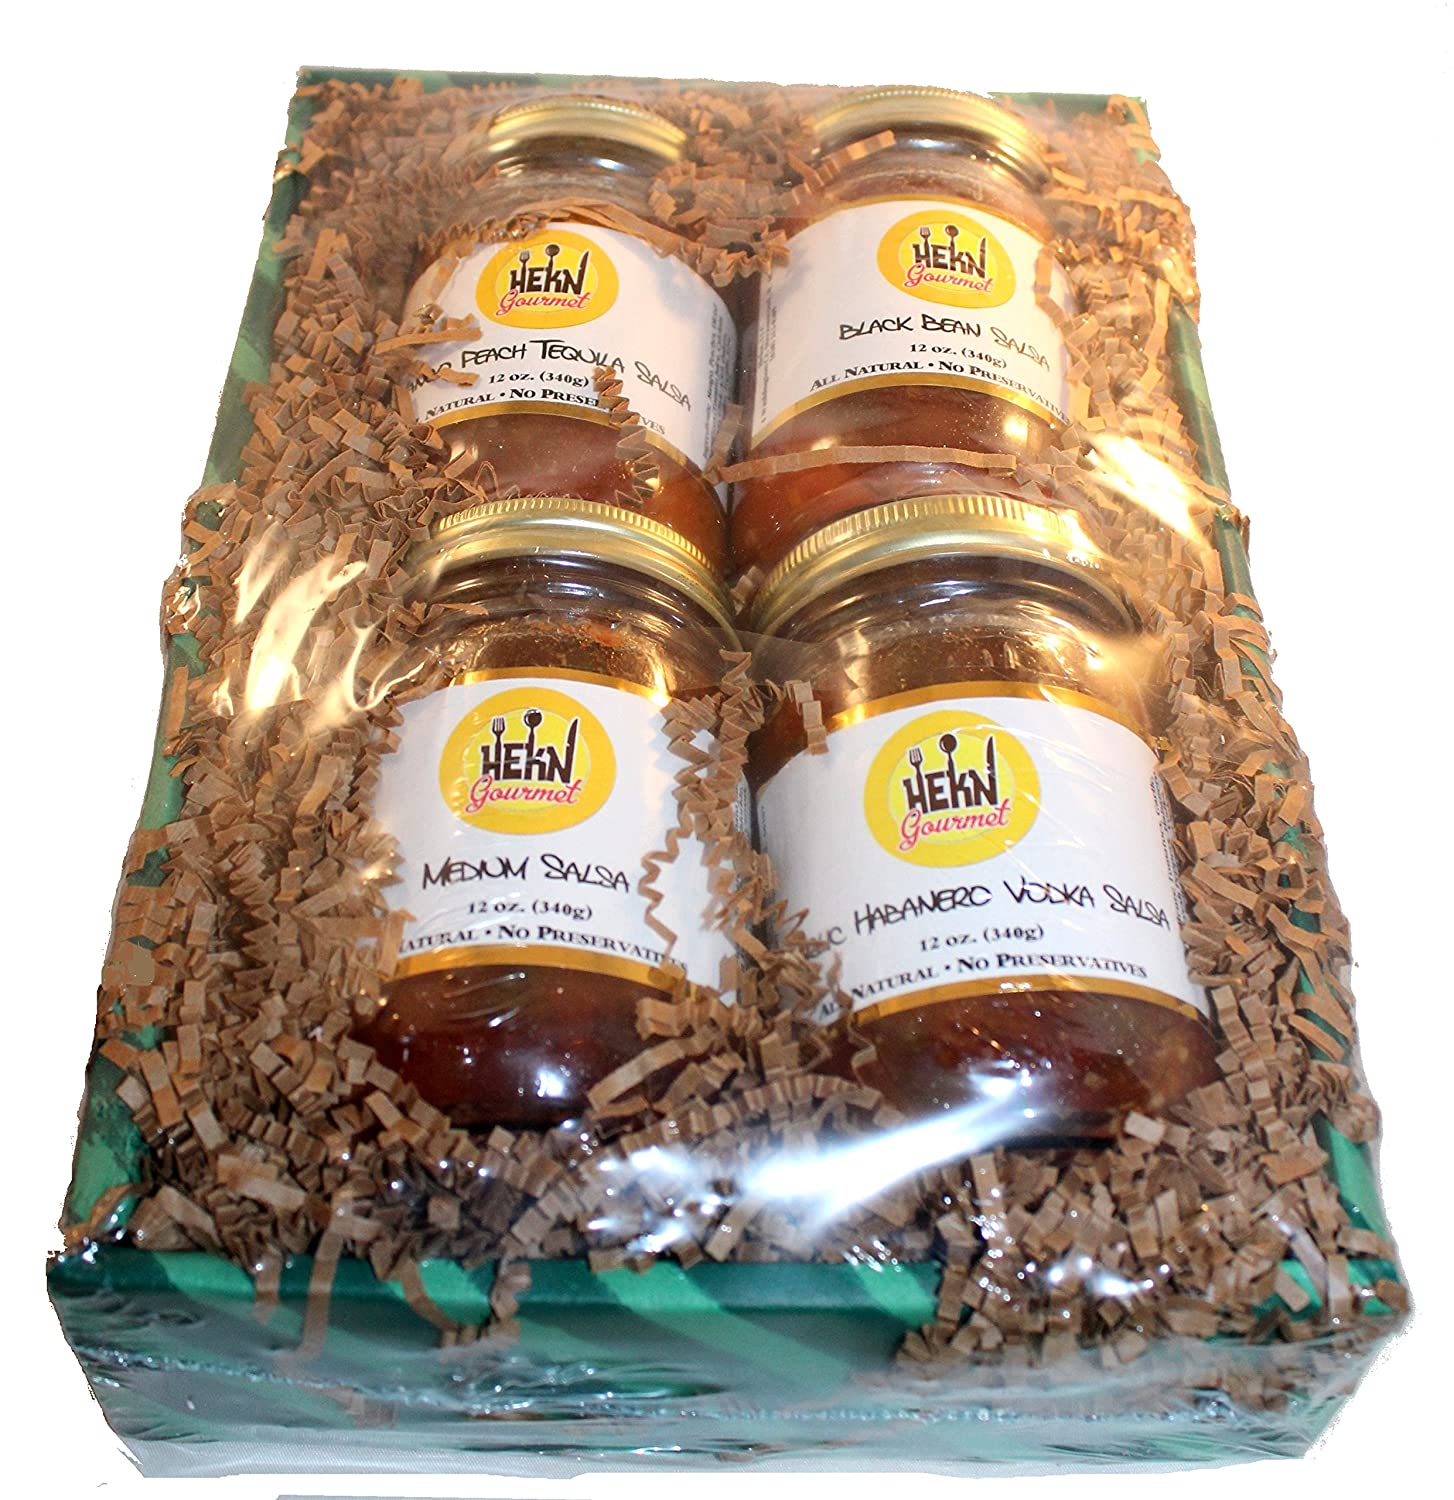 Amazon.com: HEKN Gourmet Salsa Gift Set (Mango Peach Tequila, Garlic Habanero Vodka, Medium Salsa and Black Bean) All Natural, No Preservatives